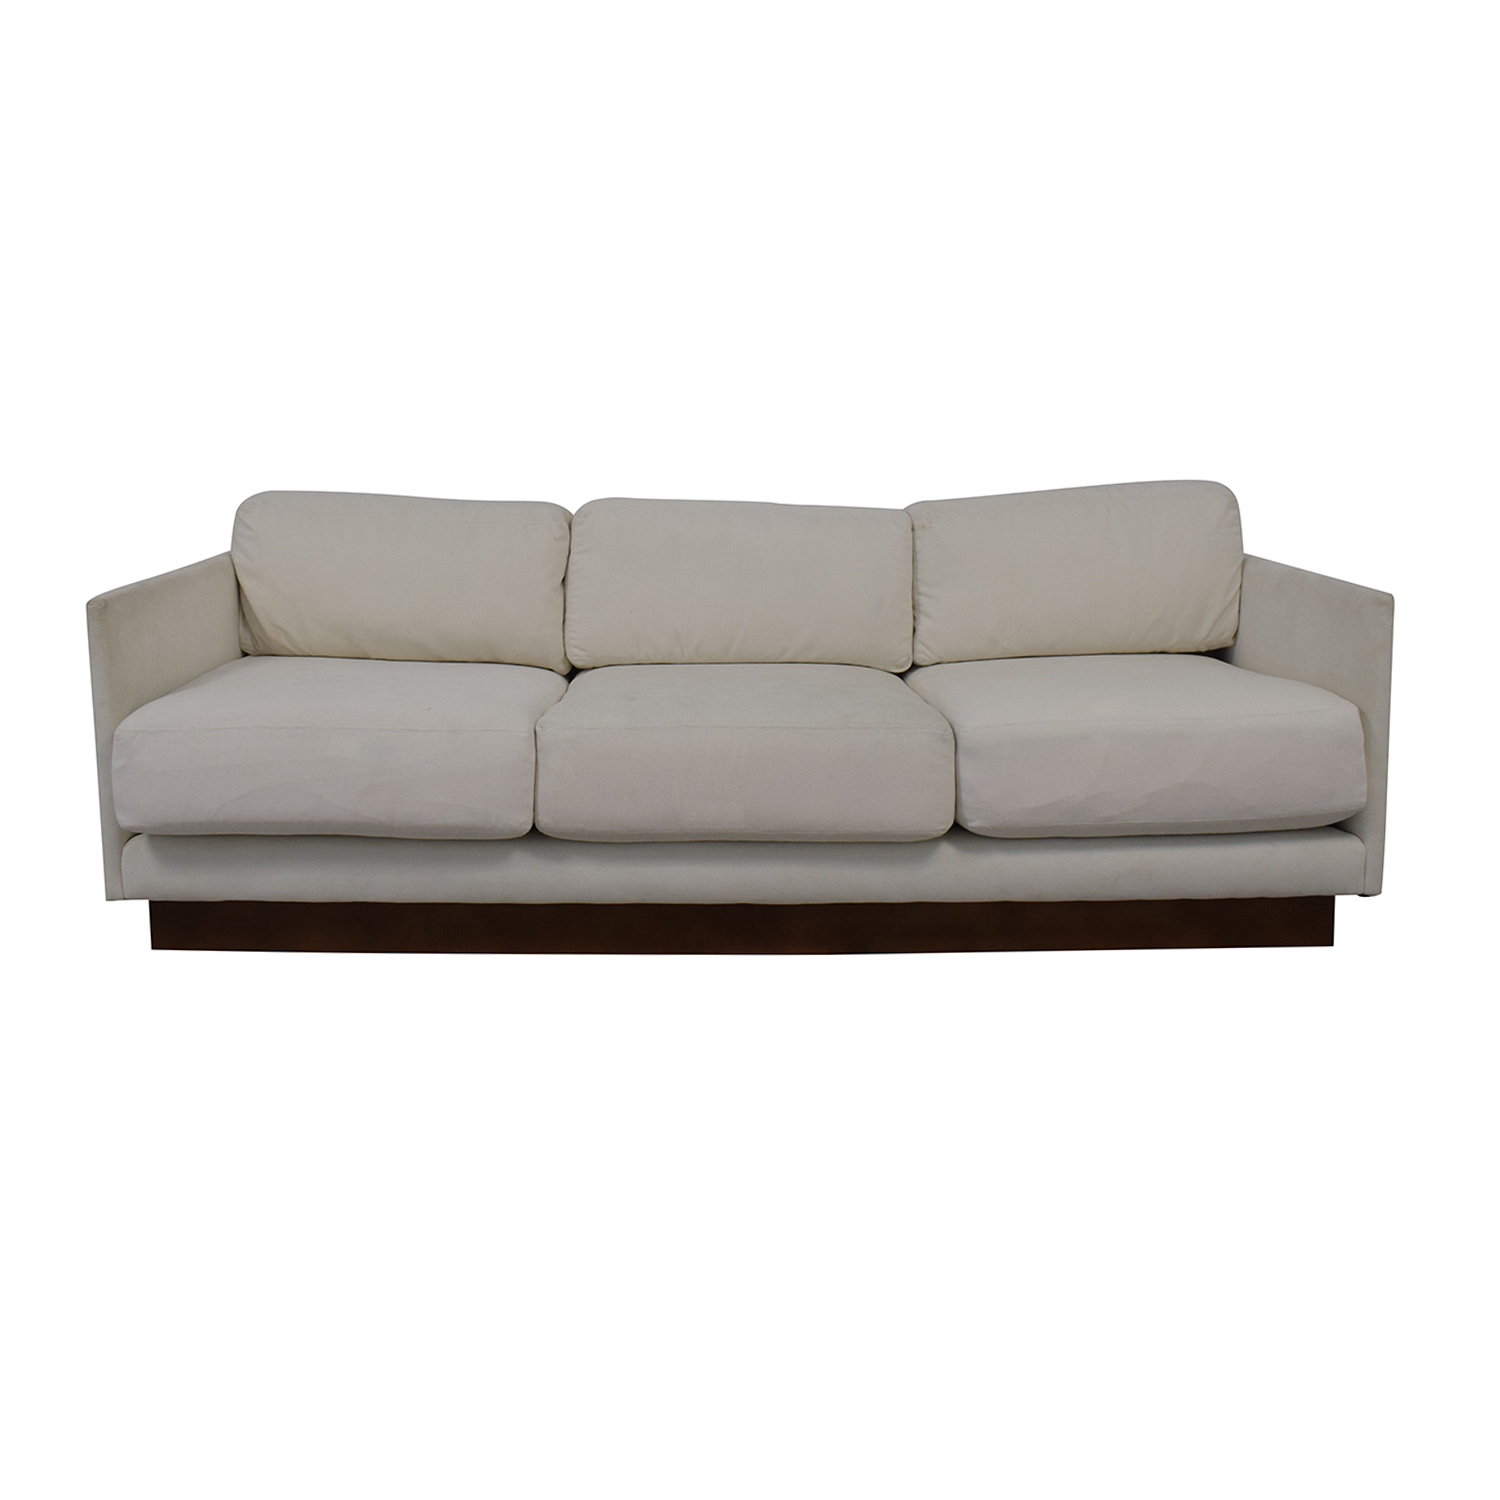 Mitchell Gold + Bob Williams Mitchell Gold + Bob Williams White Three-Cushion Sofa